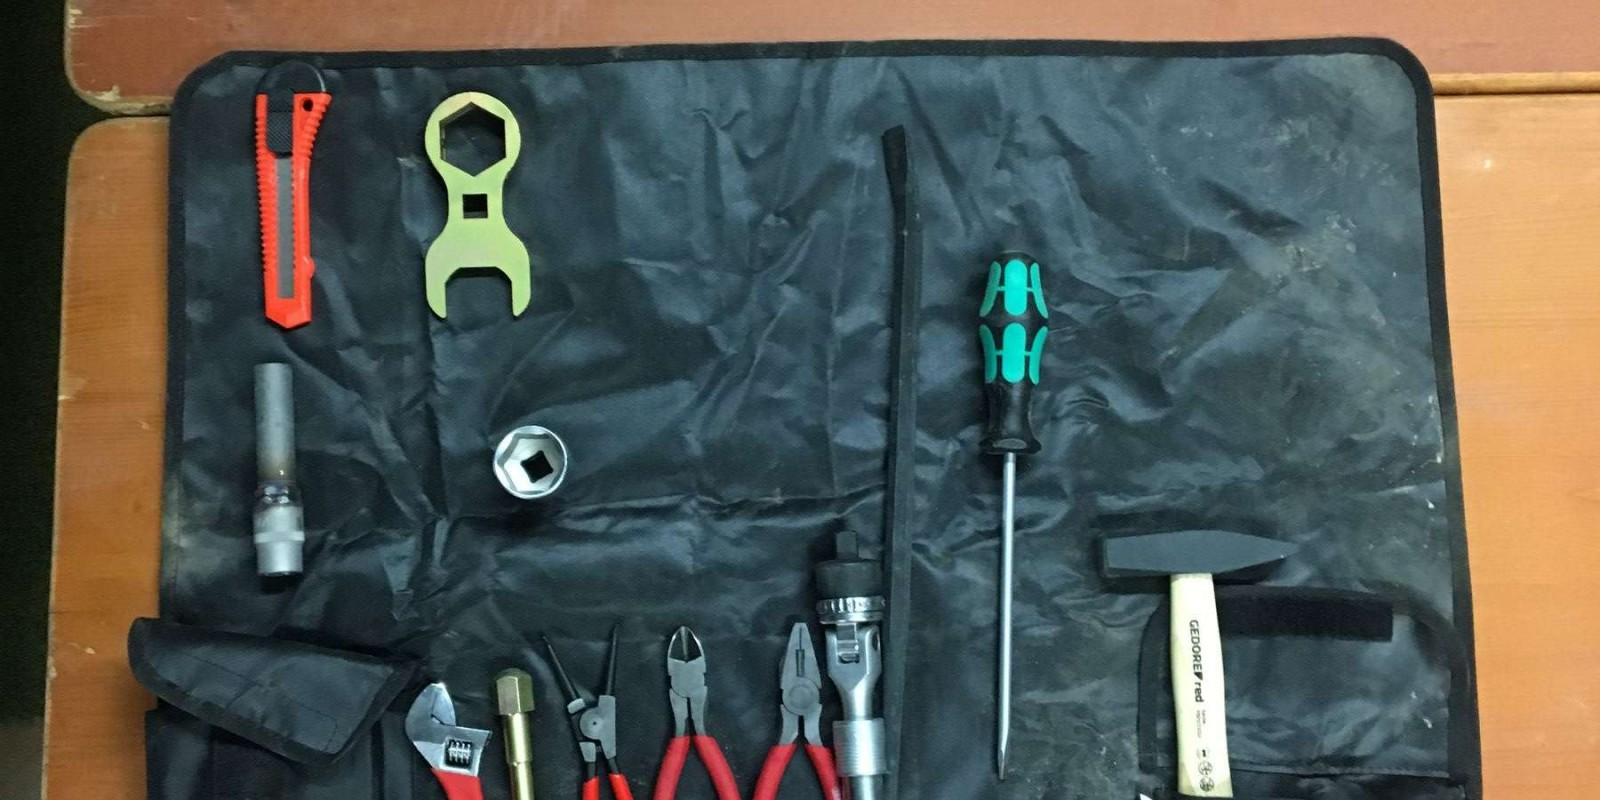 Images of tools used by the athletes and mechanics during the 2020 Dakar